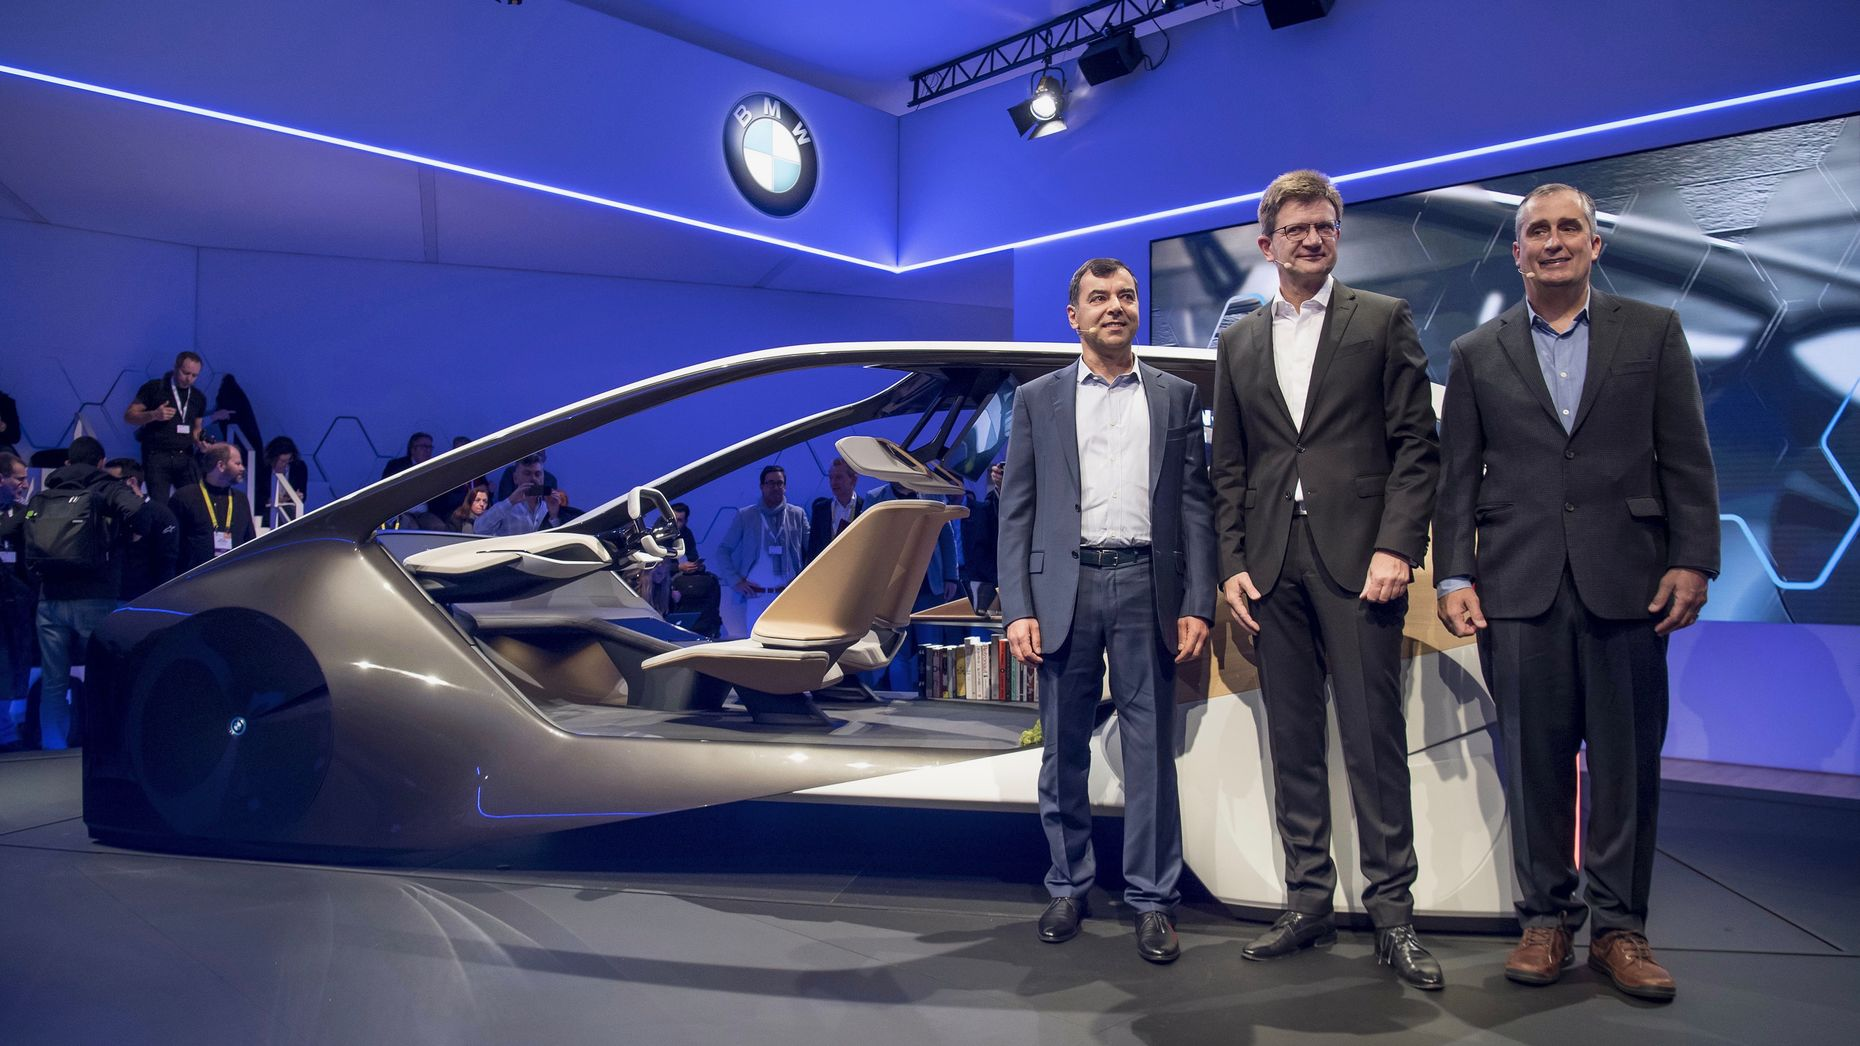 Mobileye chairman Amnon Shahua, BMW management board member Klaus Froehlich and Intel CEO Brian Krzanich at CES in January. Photo by Bloomberg